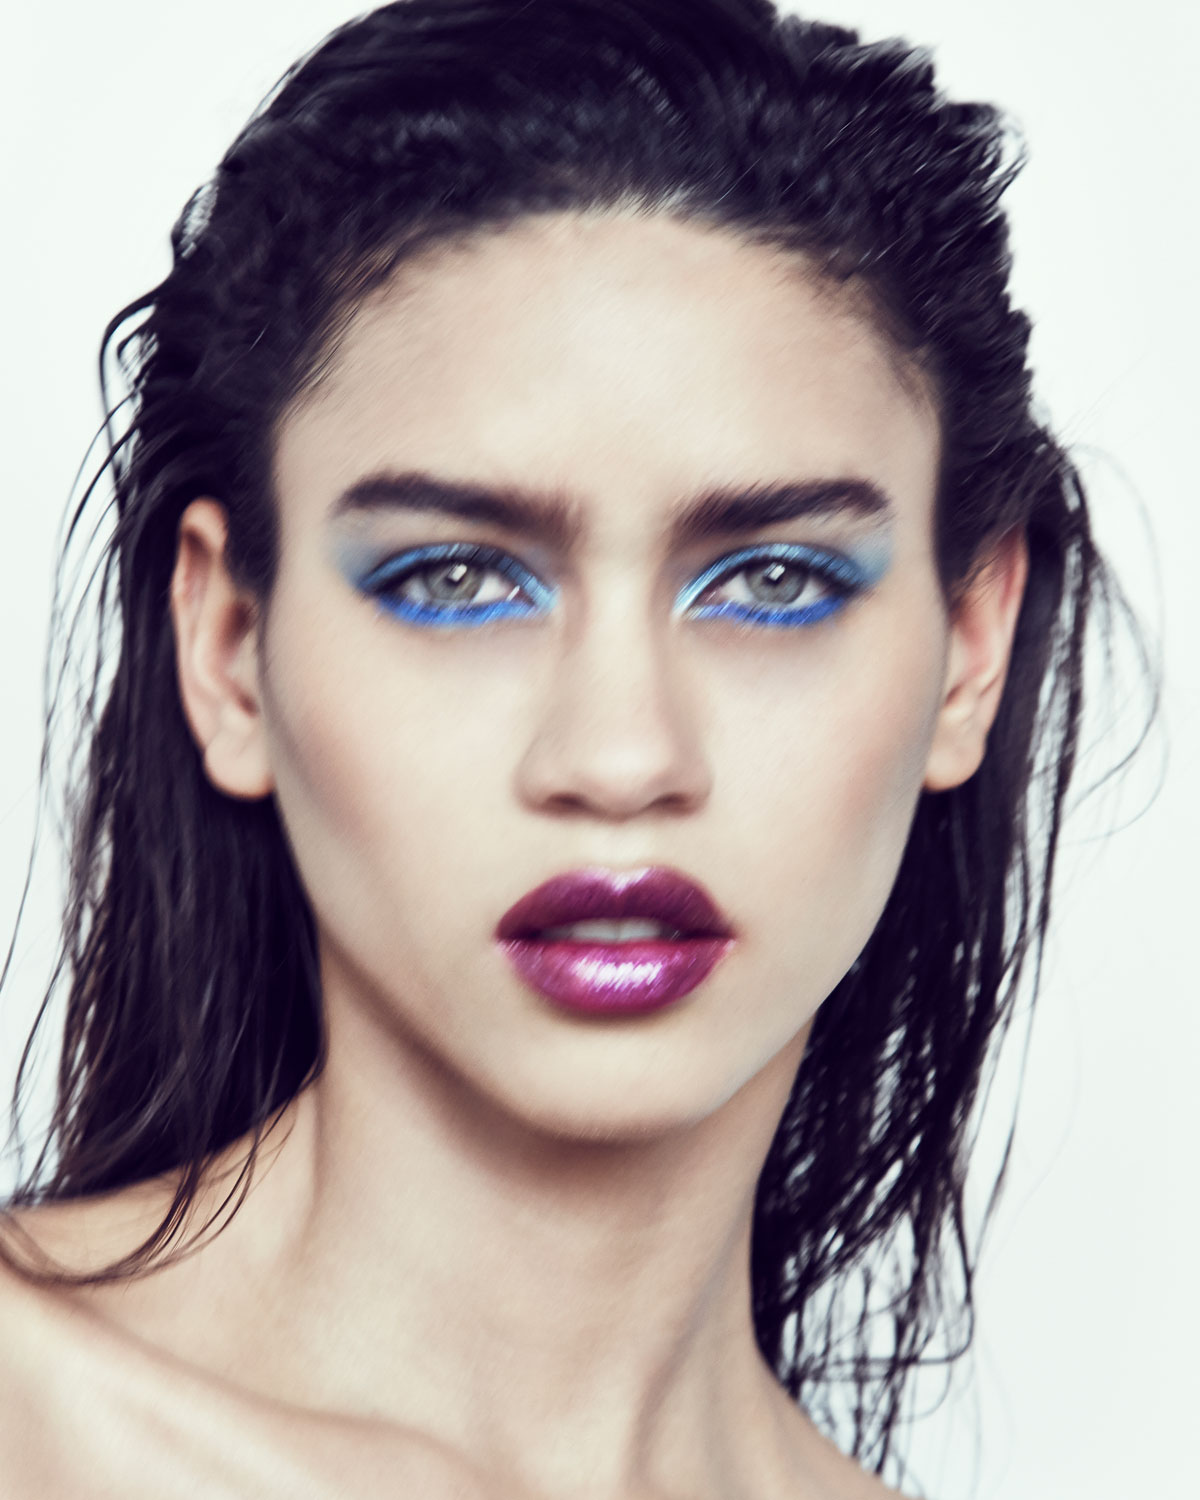 electric-blue-eye-karol-santos-beauty.jpg